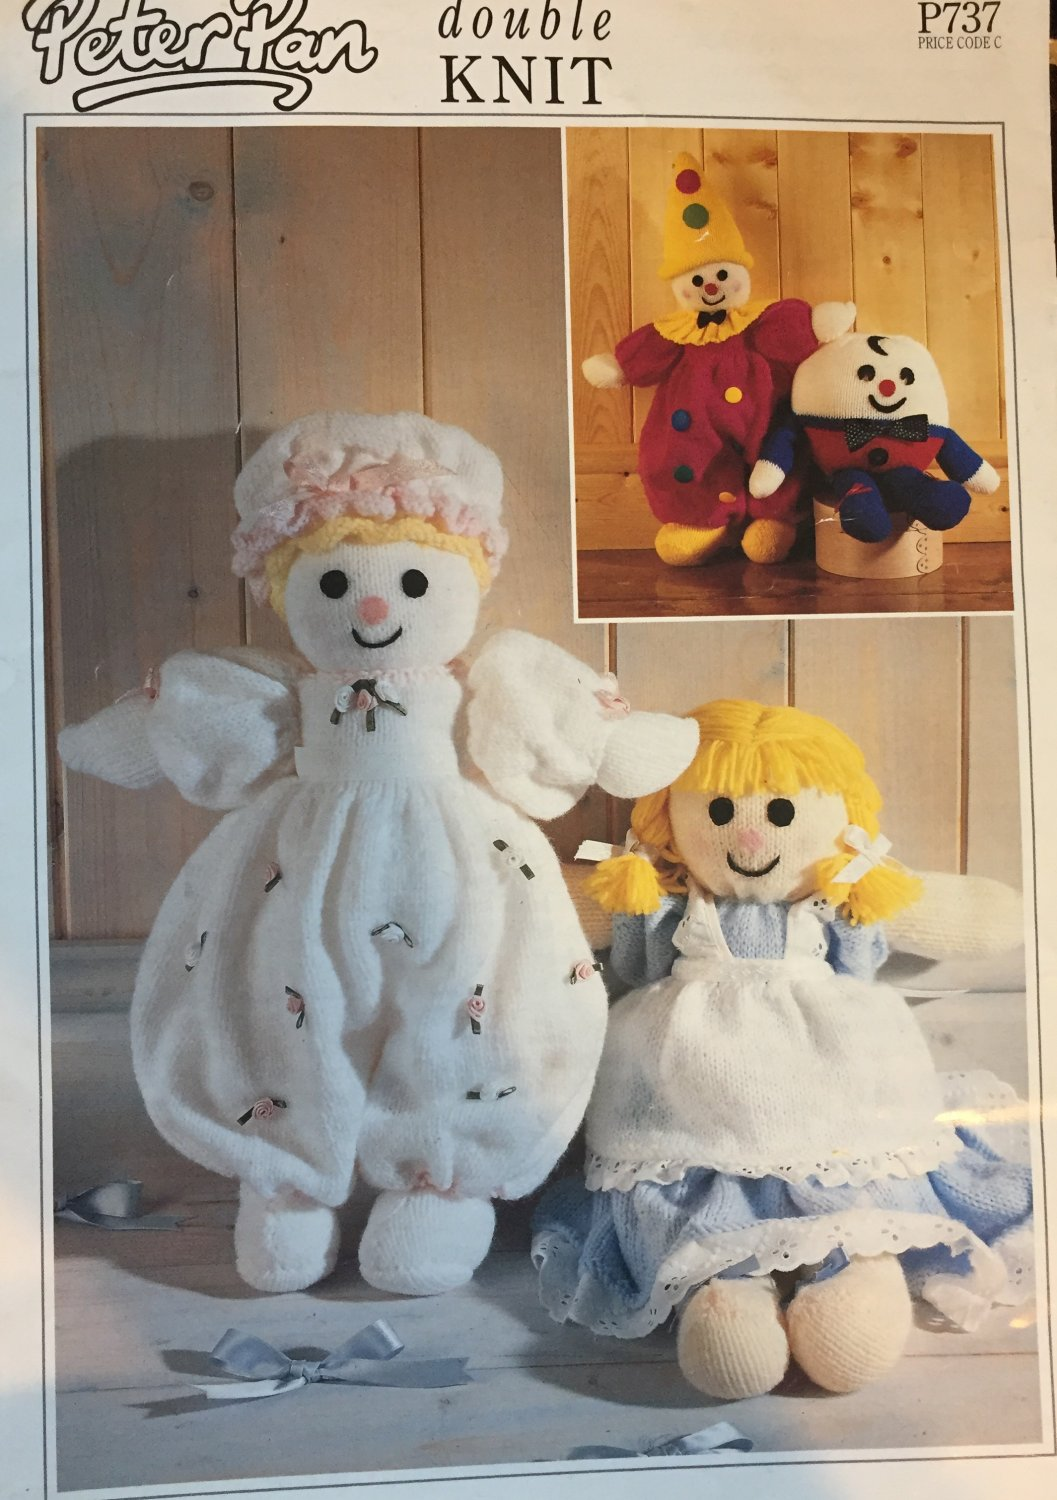 Knitted doll clown and Humpty Dumpty  Peter Pan Double Knit Pattern P737